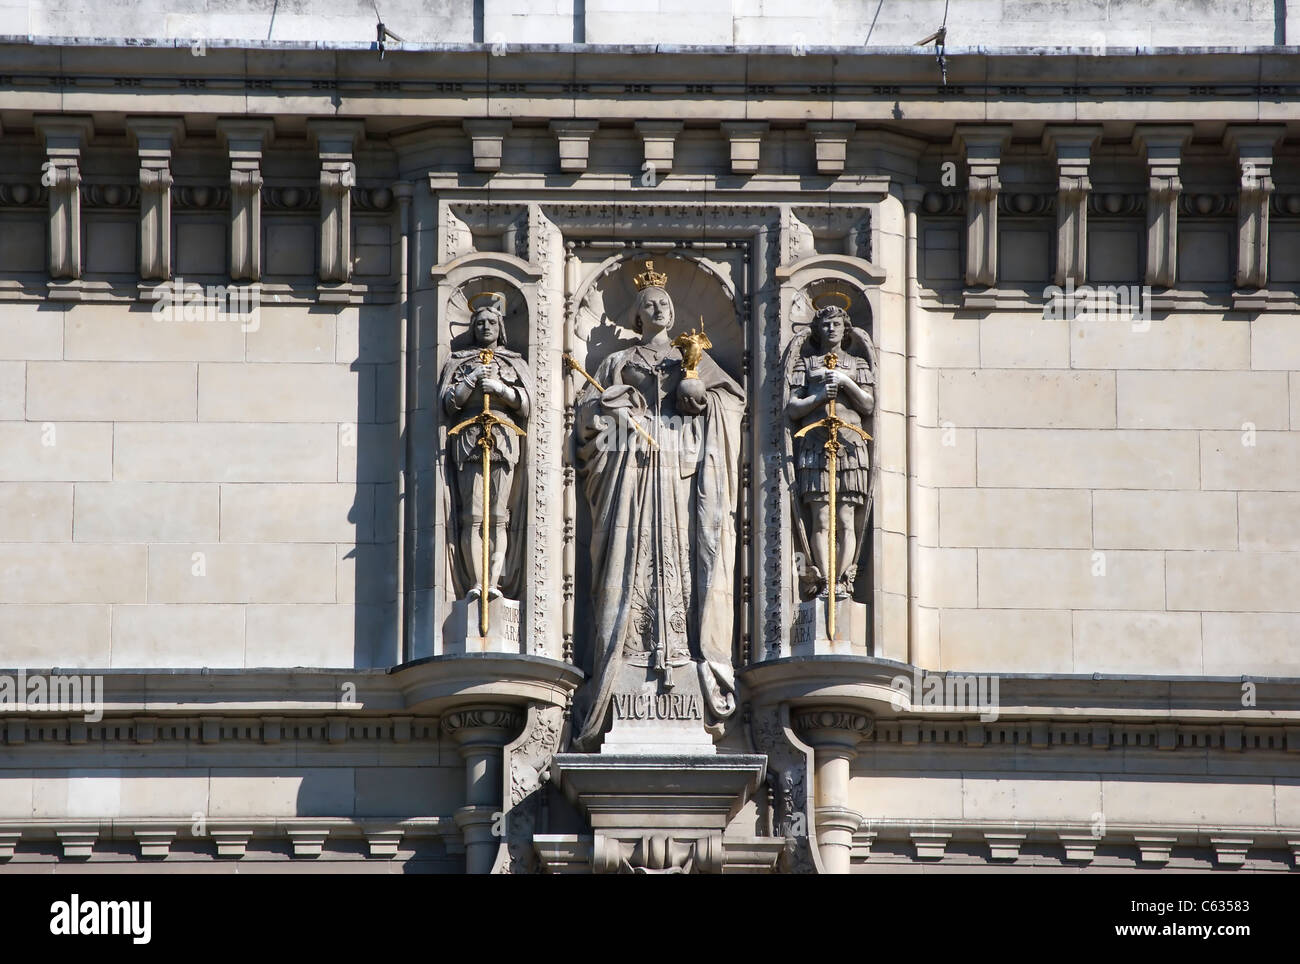 alfred drury's  statue of queen victoria above the main entrance to the victoria and albert museum, london, - Stock Image